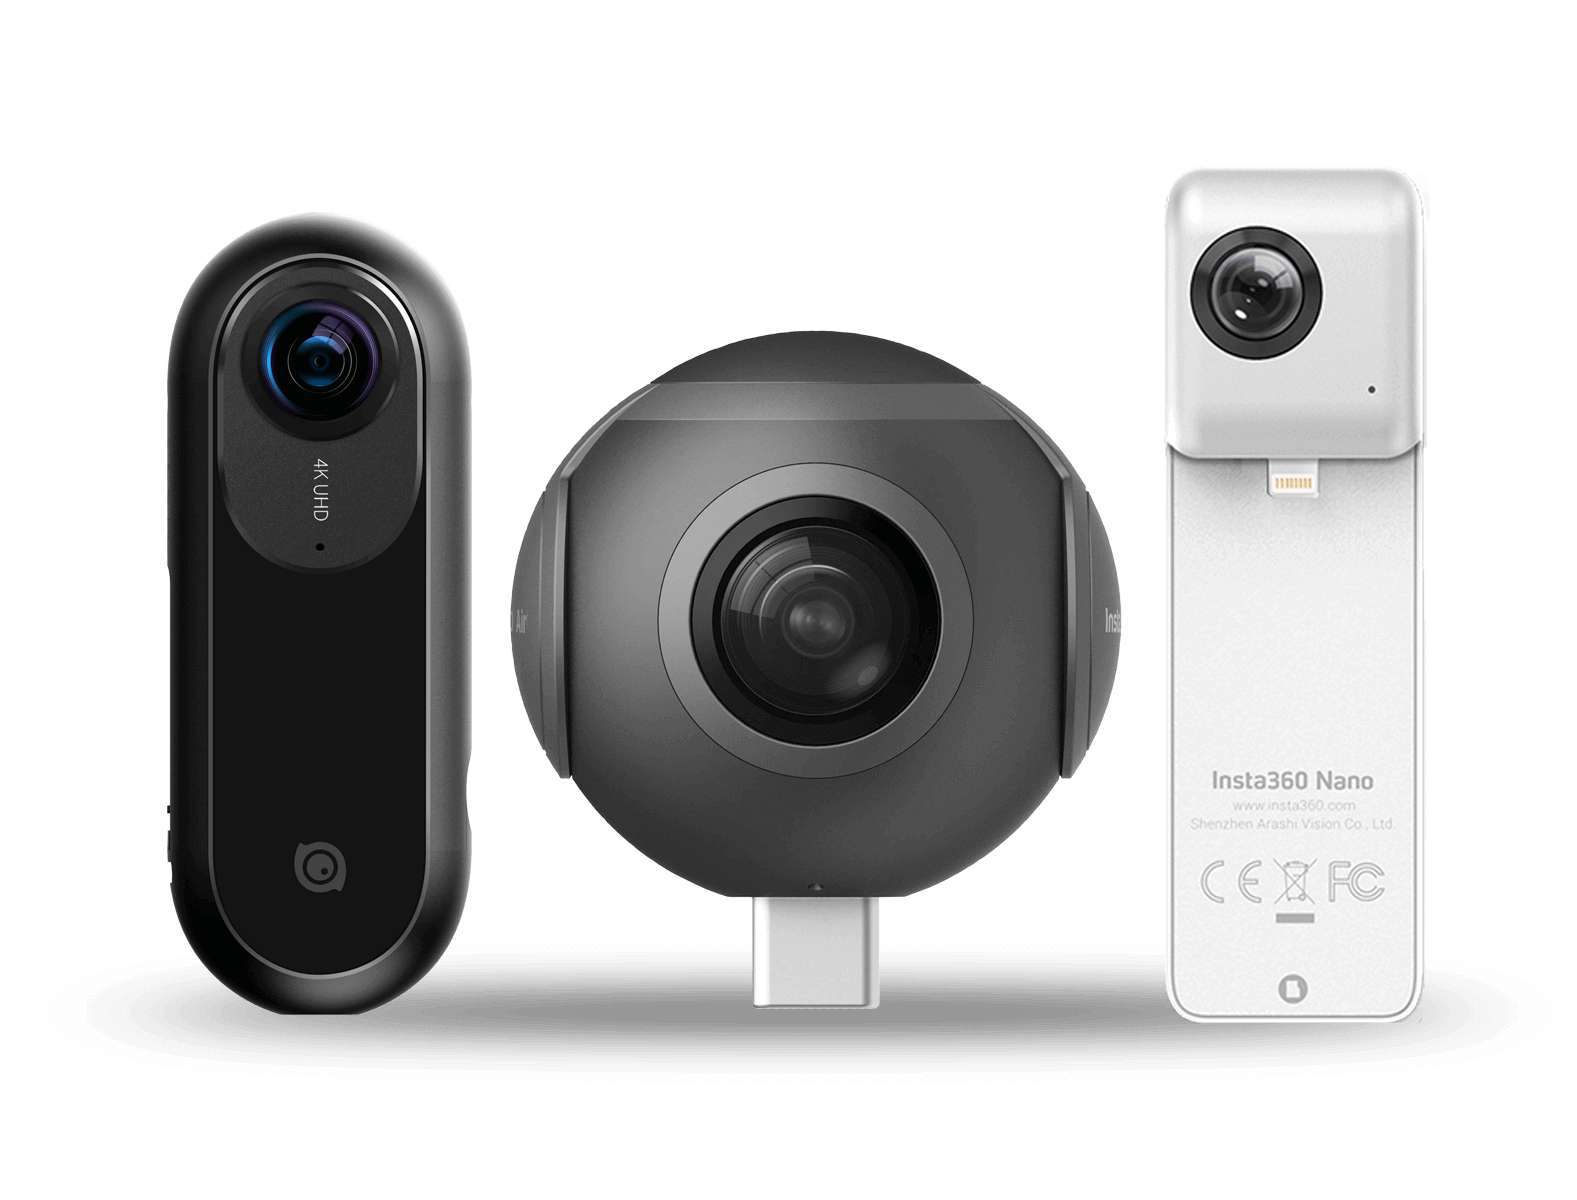 Insta360 Mac video editor the best tool for your cams | muvee